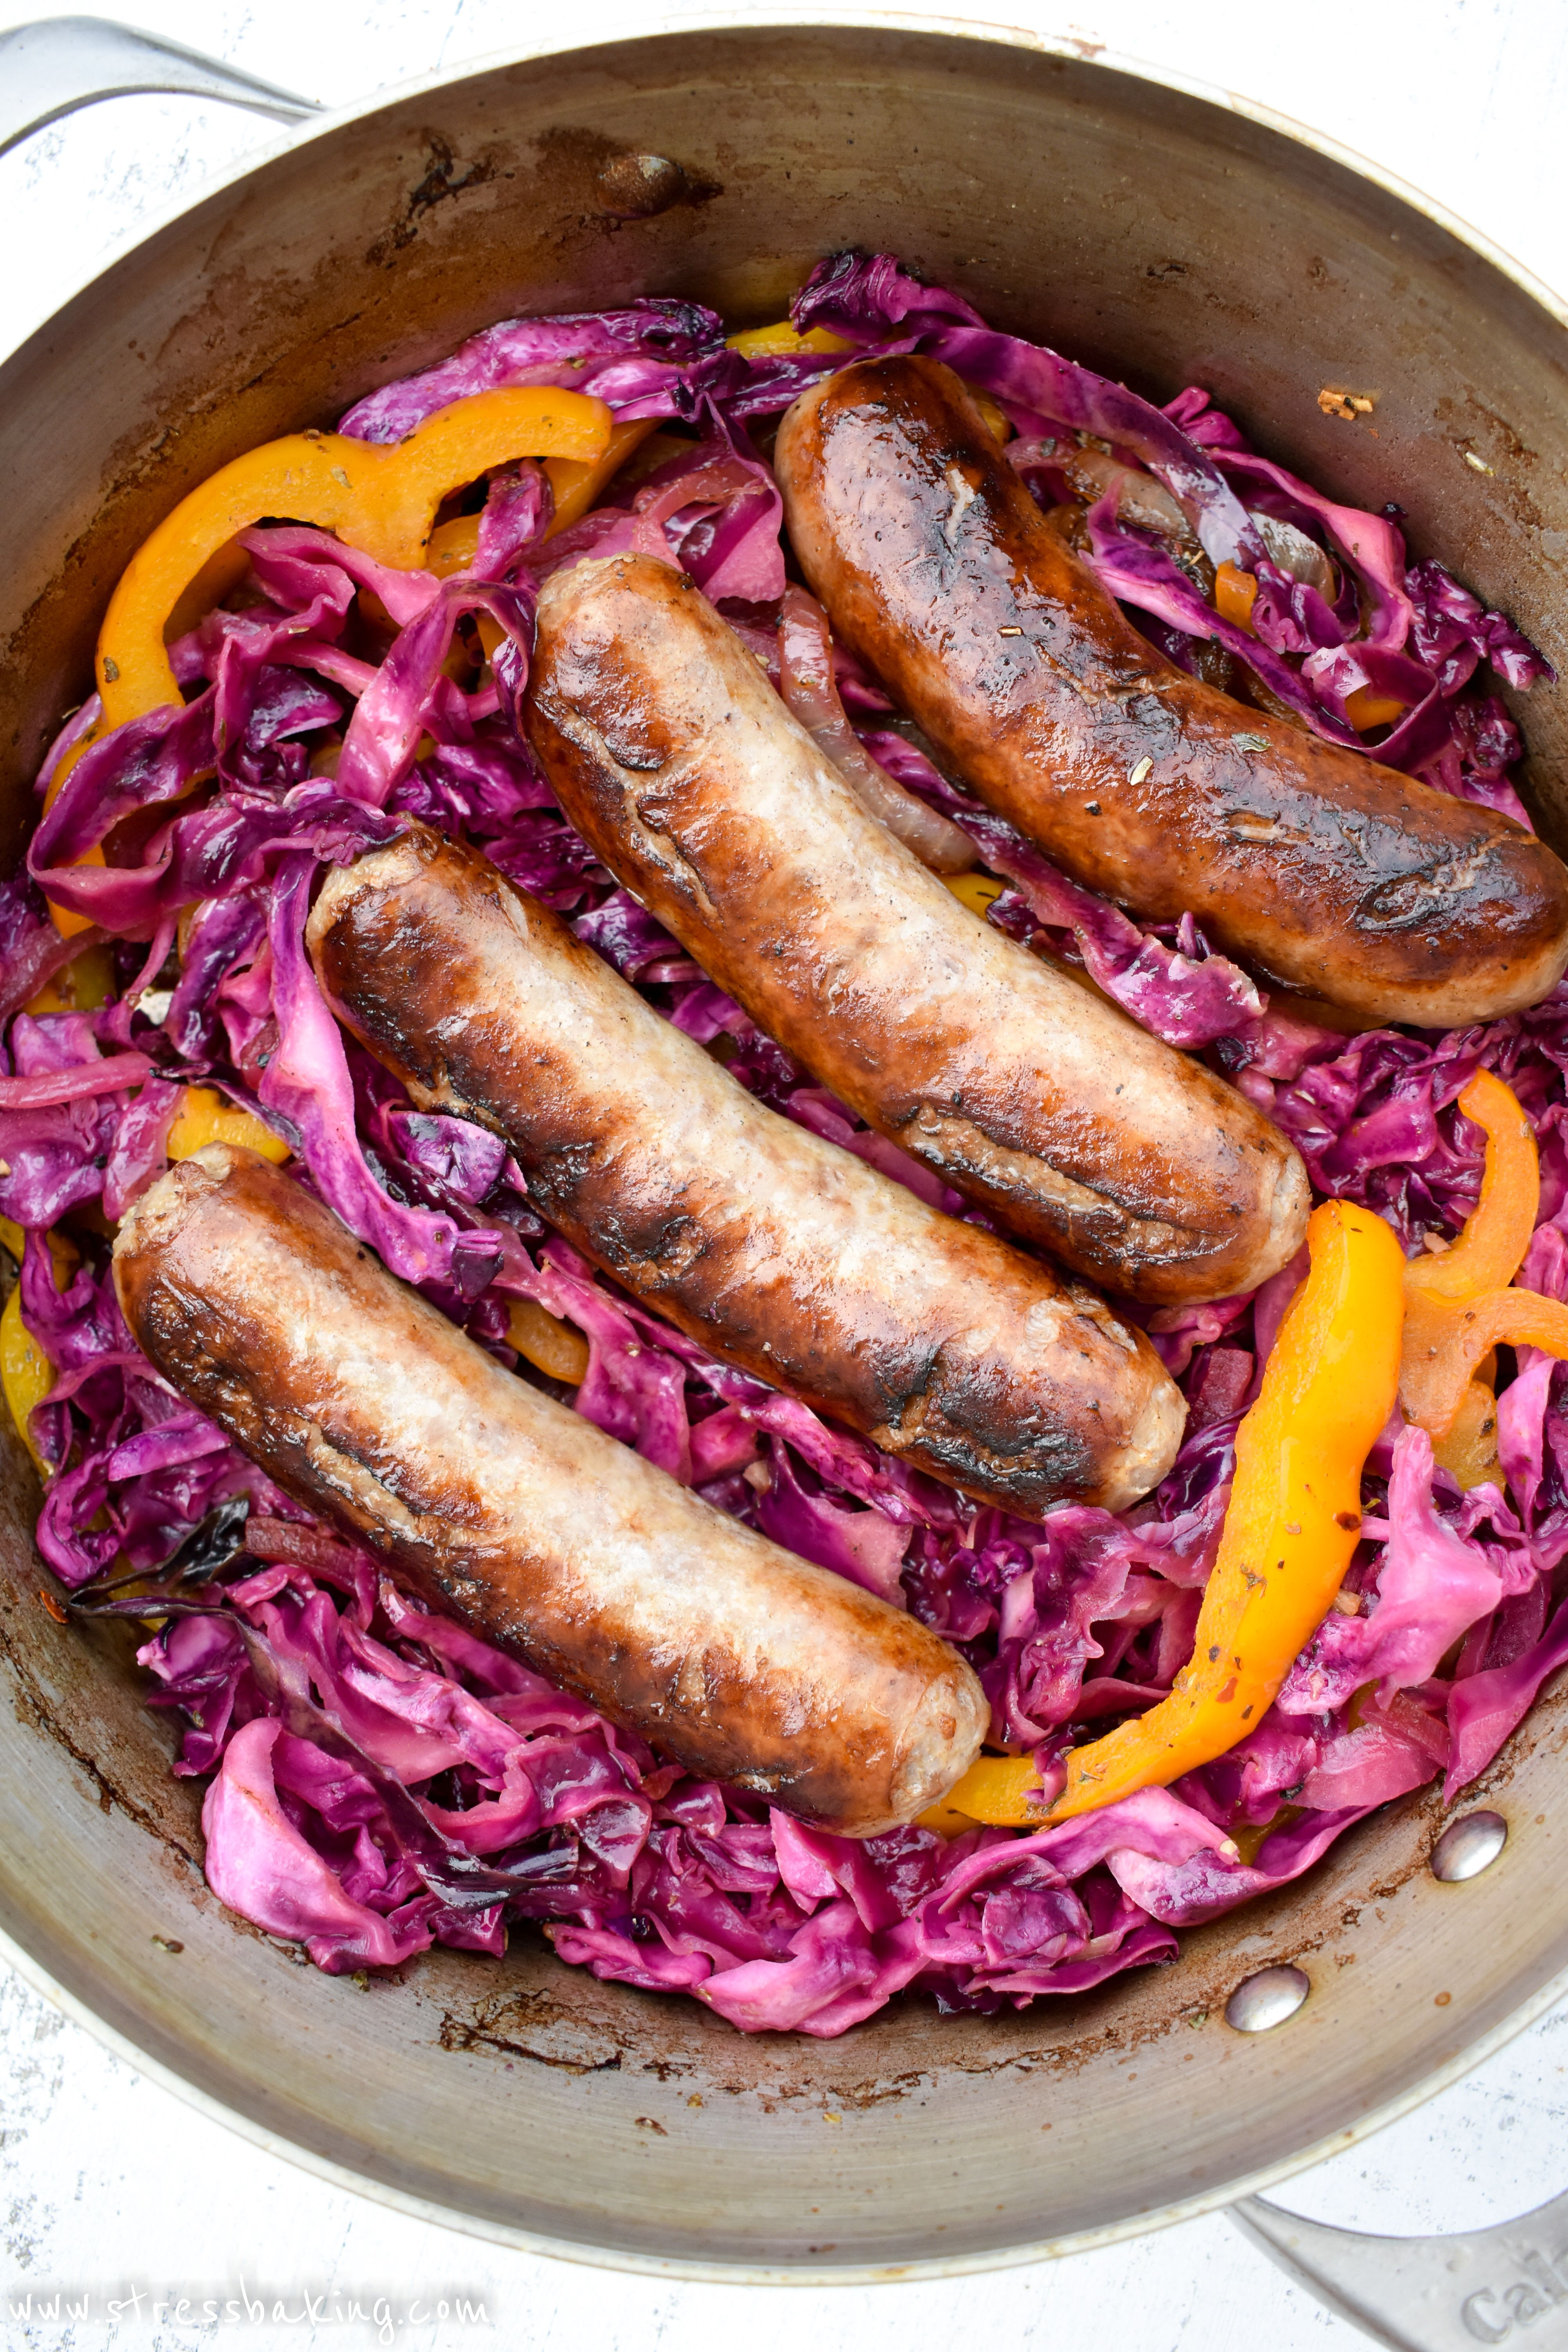 Smoky sauteed vegetables are combined with sweet and sour red cabbage to make the perfect partner to juicy, flavorful beer-soaked bratwurst!